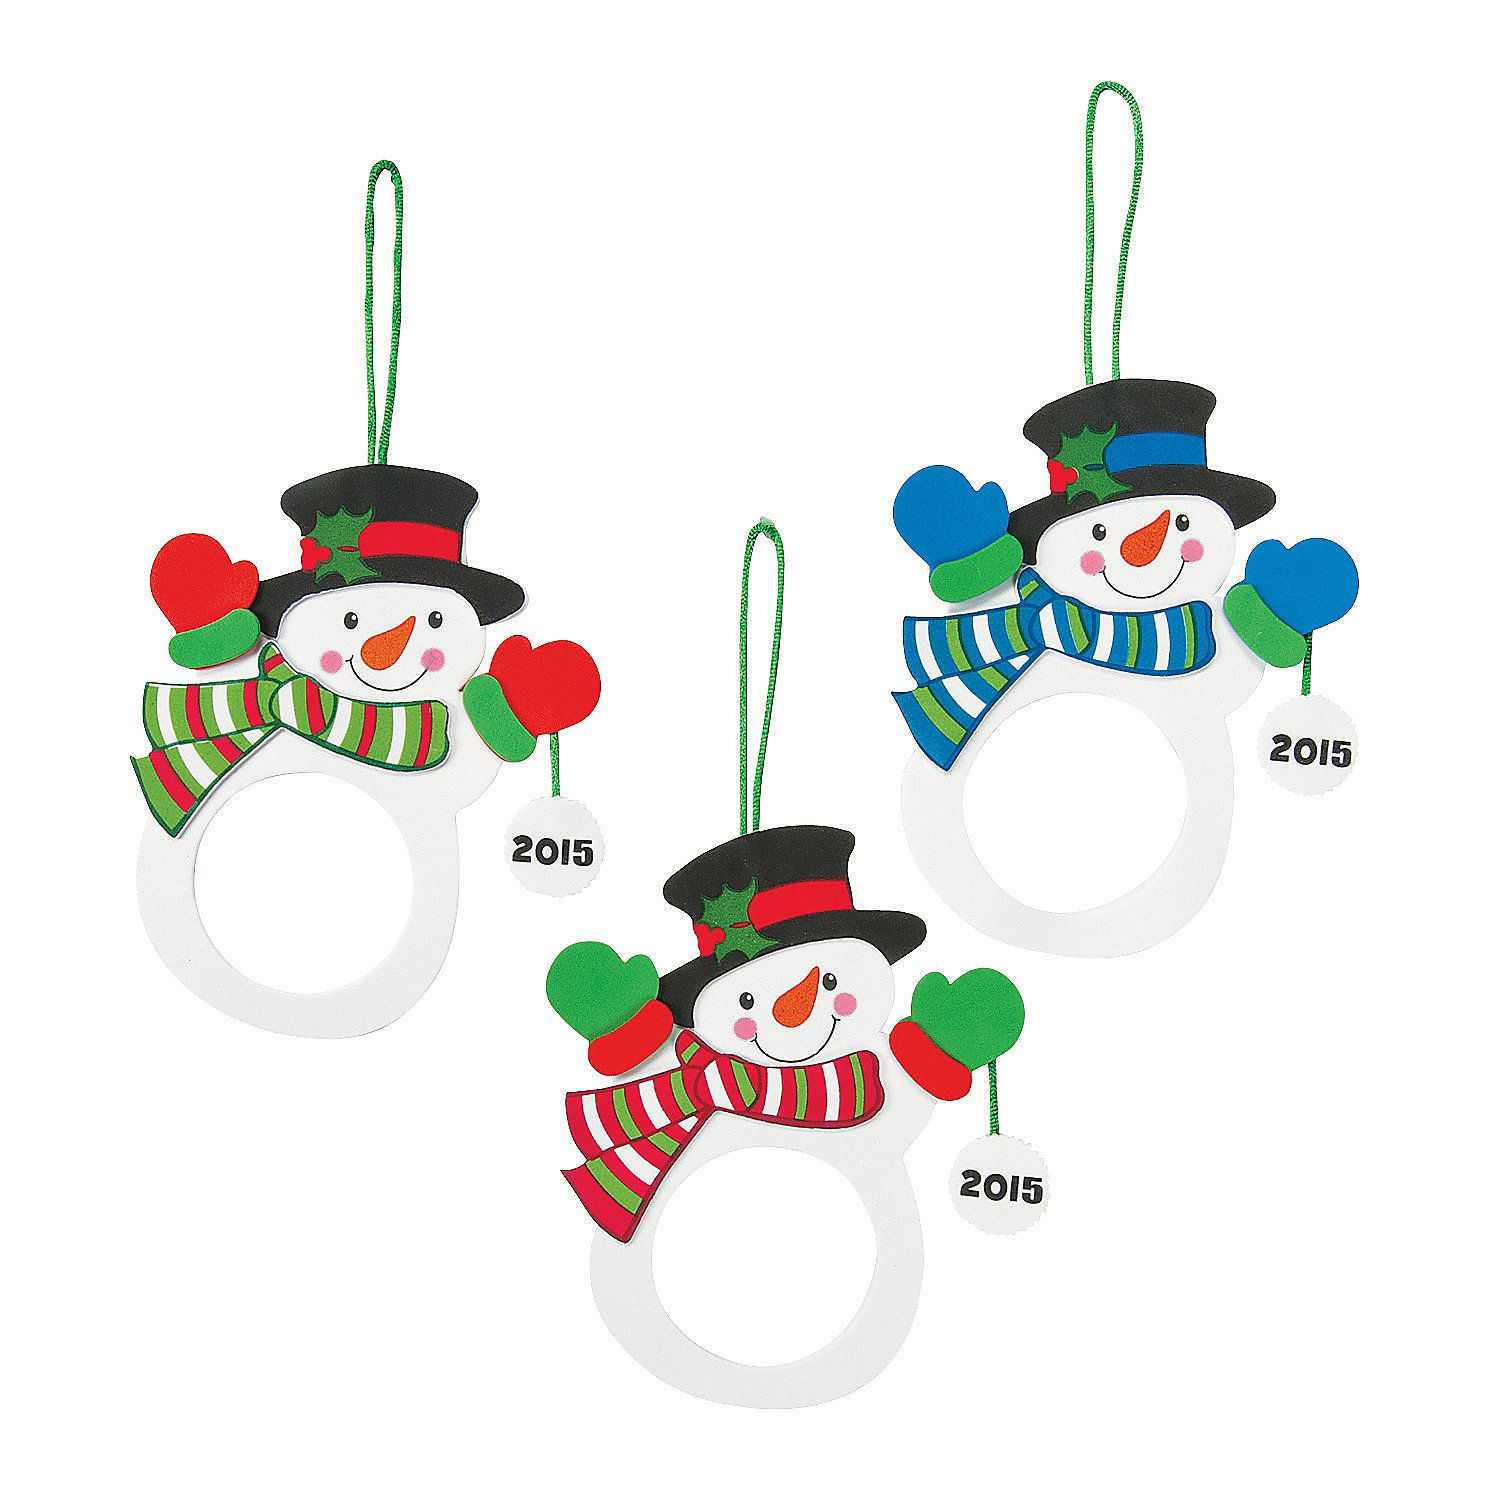 2015 2016 Snowman Picture Frame Ornament Craft Kit Discontinued Picture Frame Ornaments Ornament Crafts Ornament Frame